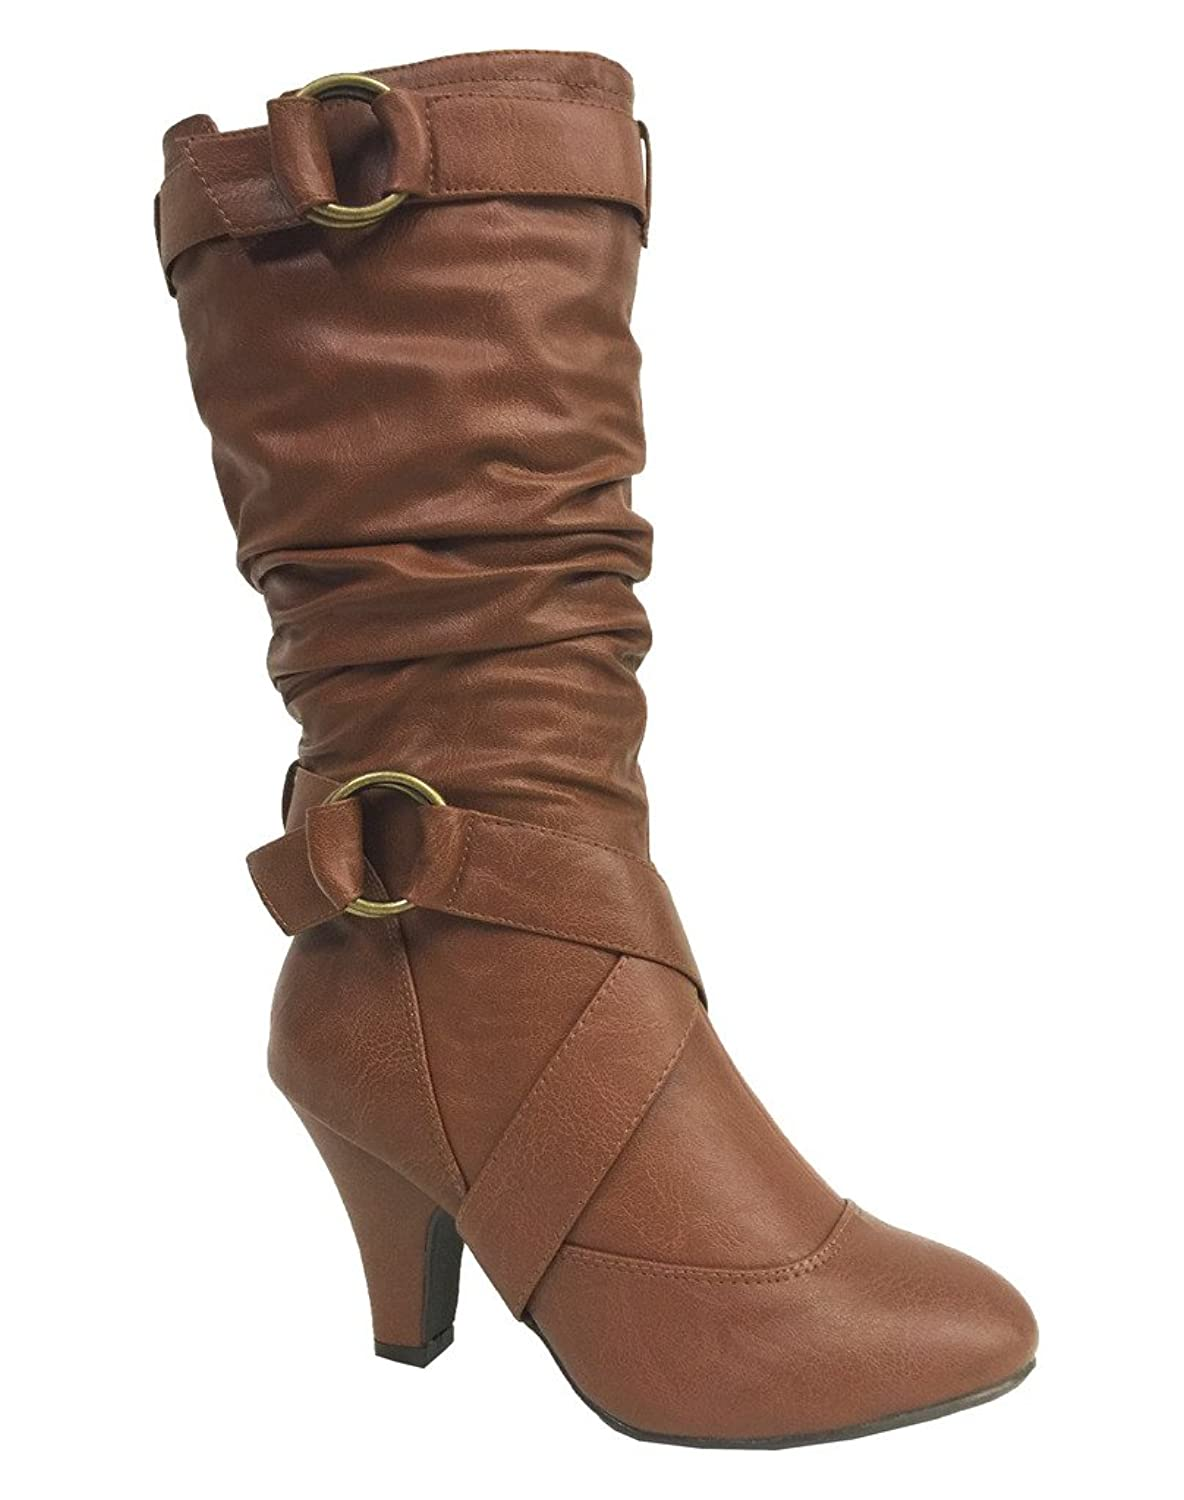 YATES! Women's Delicious Slouchy Knee High Mid Heeled Tall Boots in Cognac Leatherette